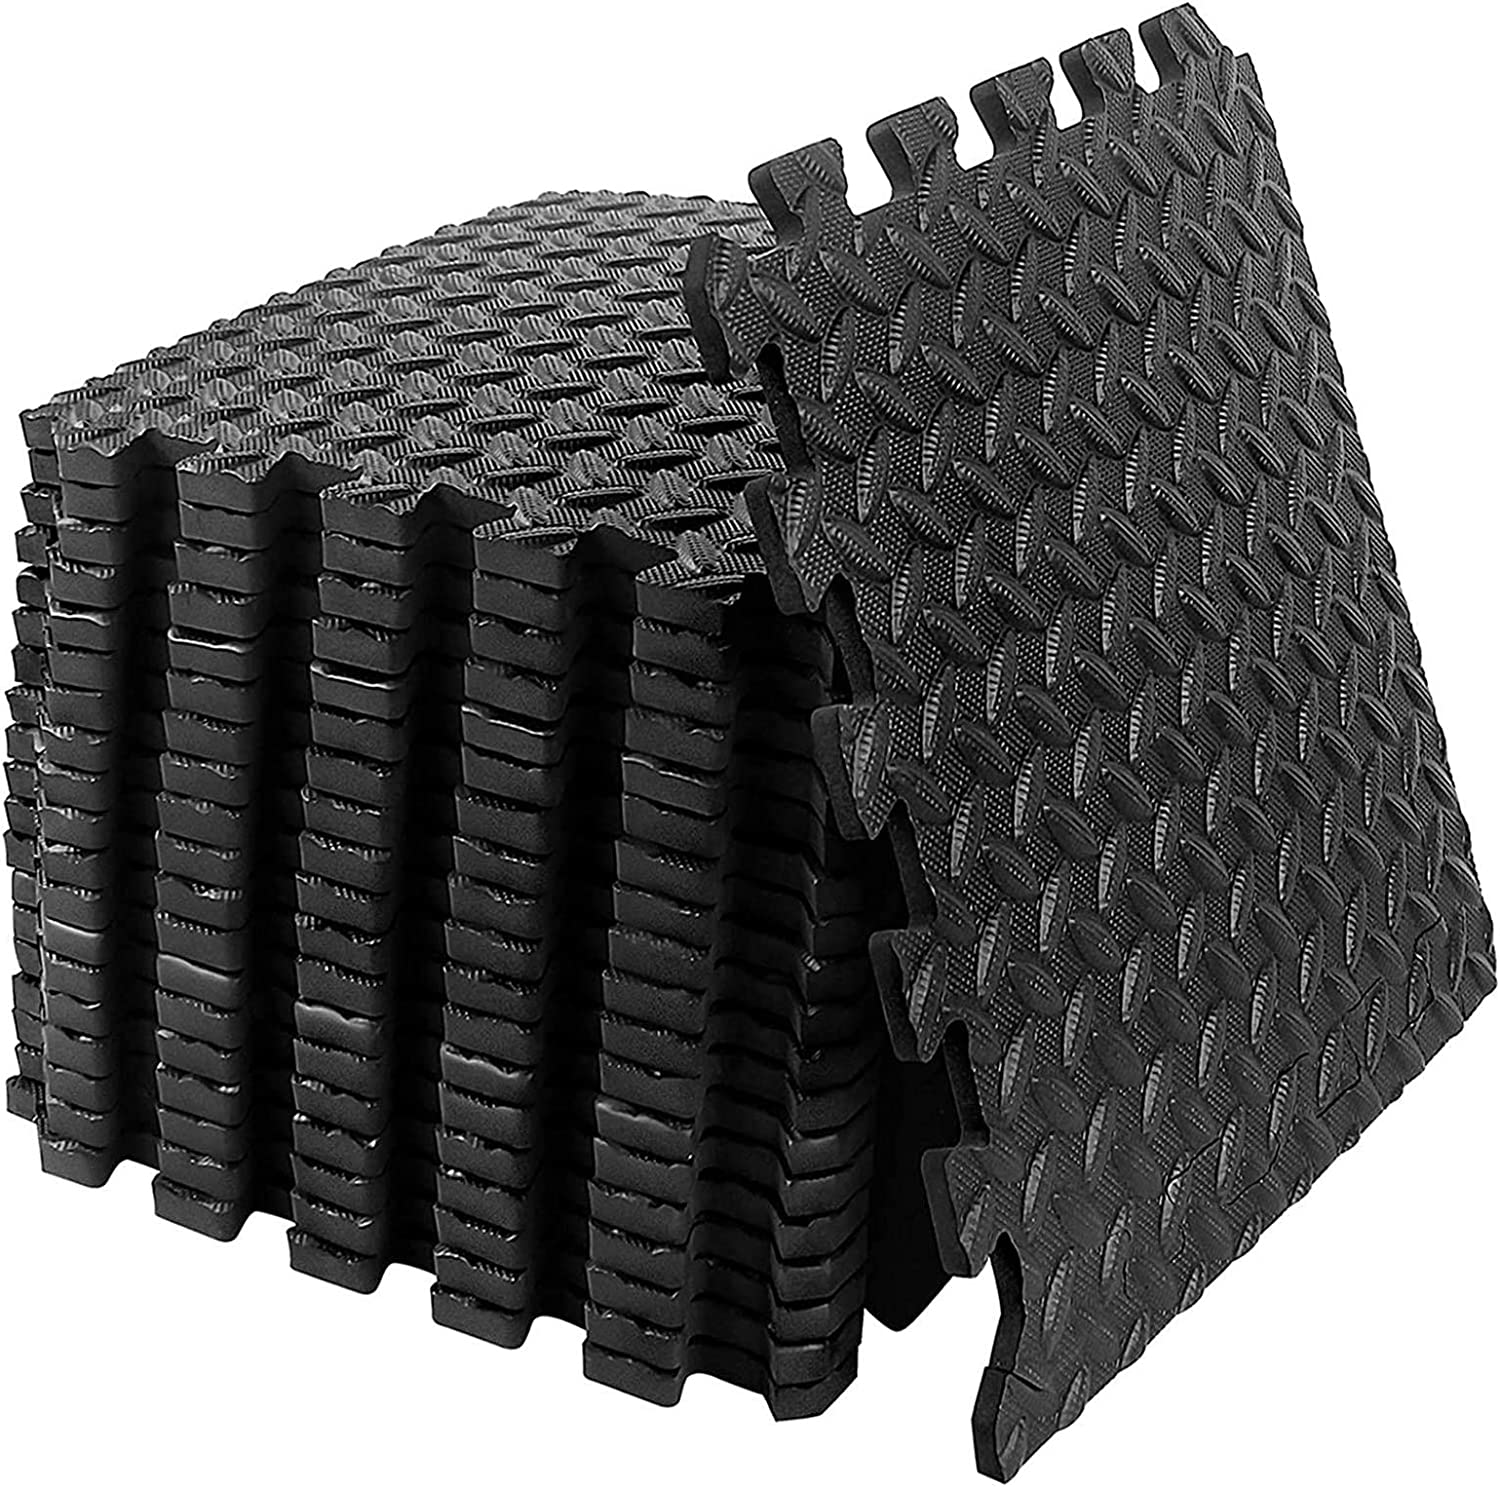 20PCS Puzzle Exercise Floor Mat, Gym Flooring for Home Gym with EVA Foam Interlocking Tiles for Gyms, Yoga, Outdoor Workout, Kids, Foam Thick Workout Mat 20 Square Feet (Black)